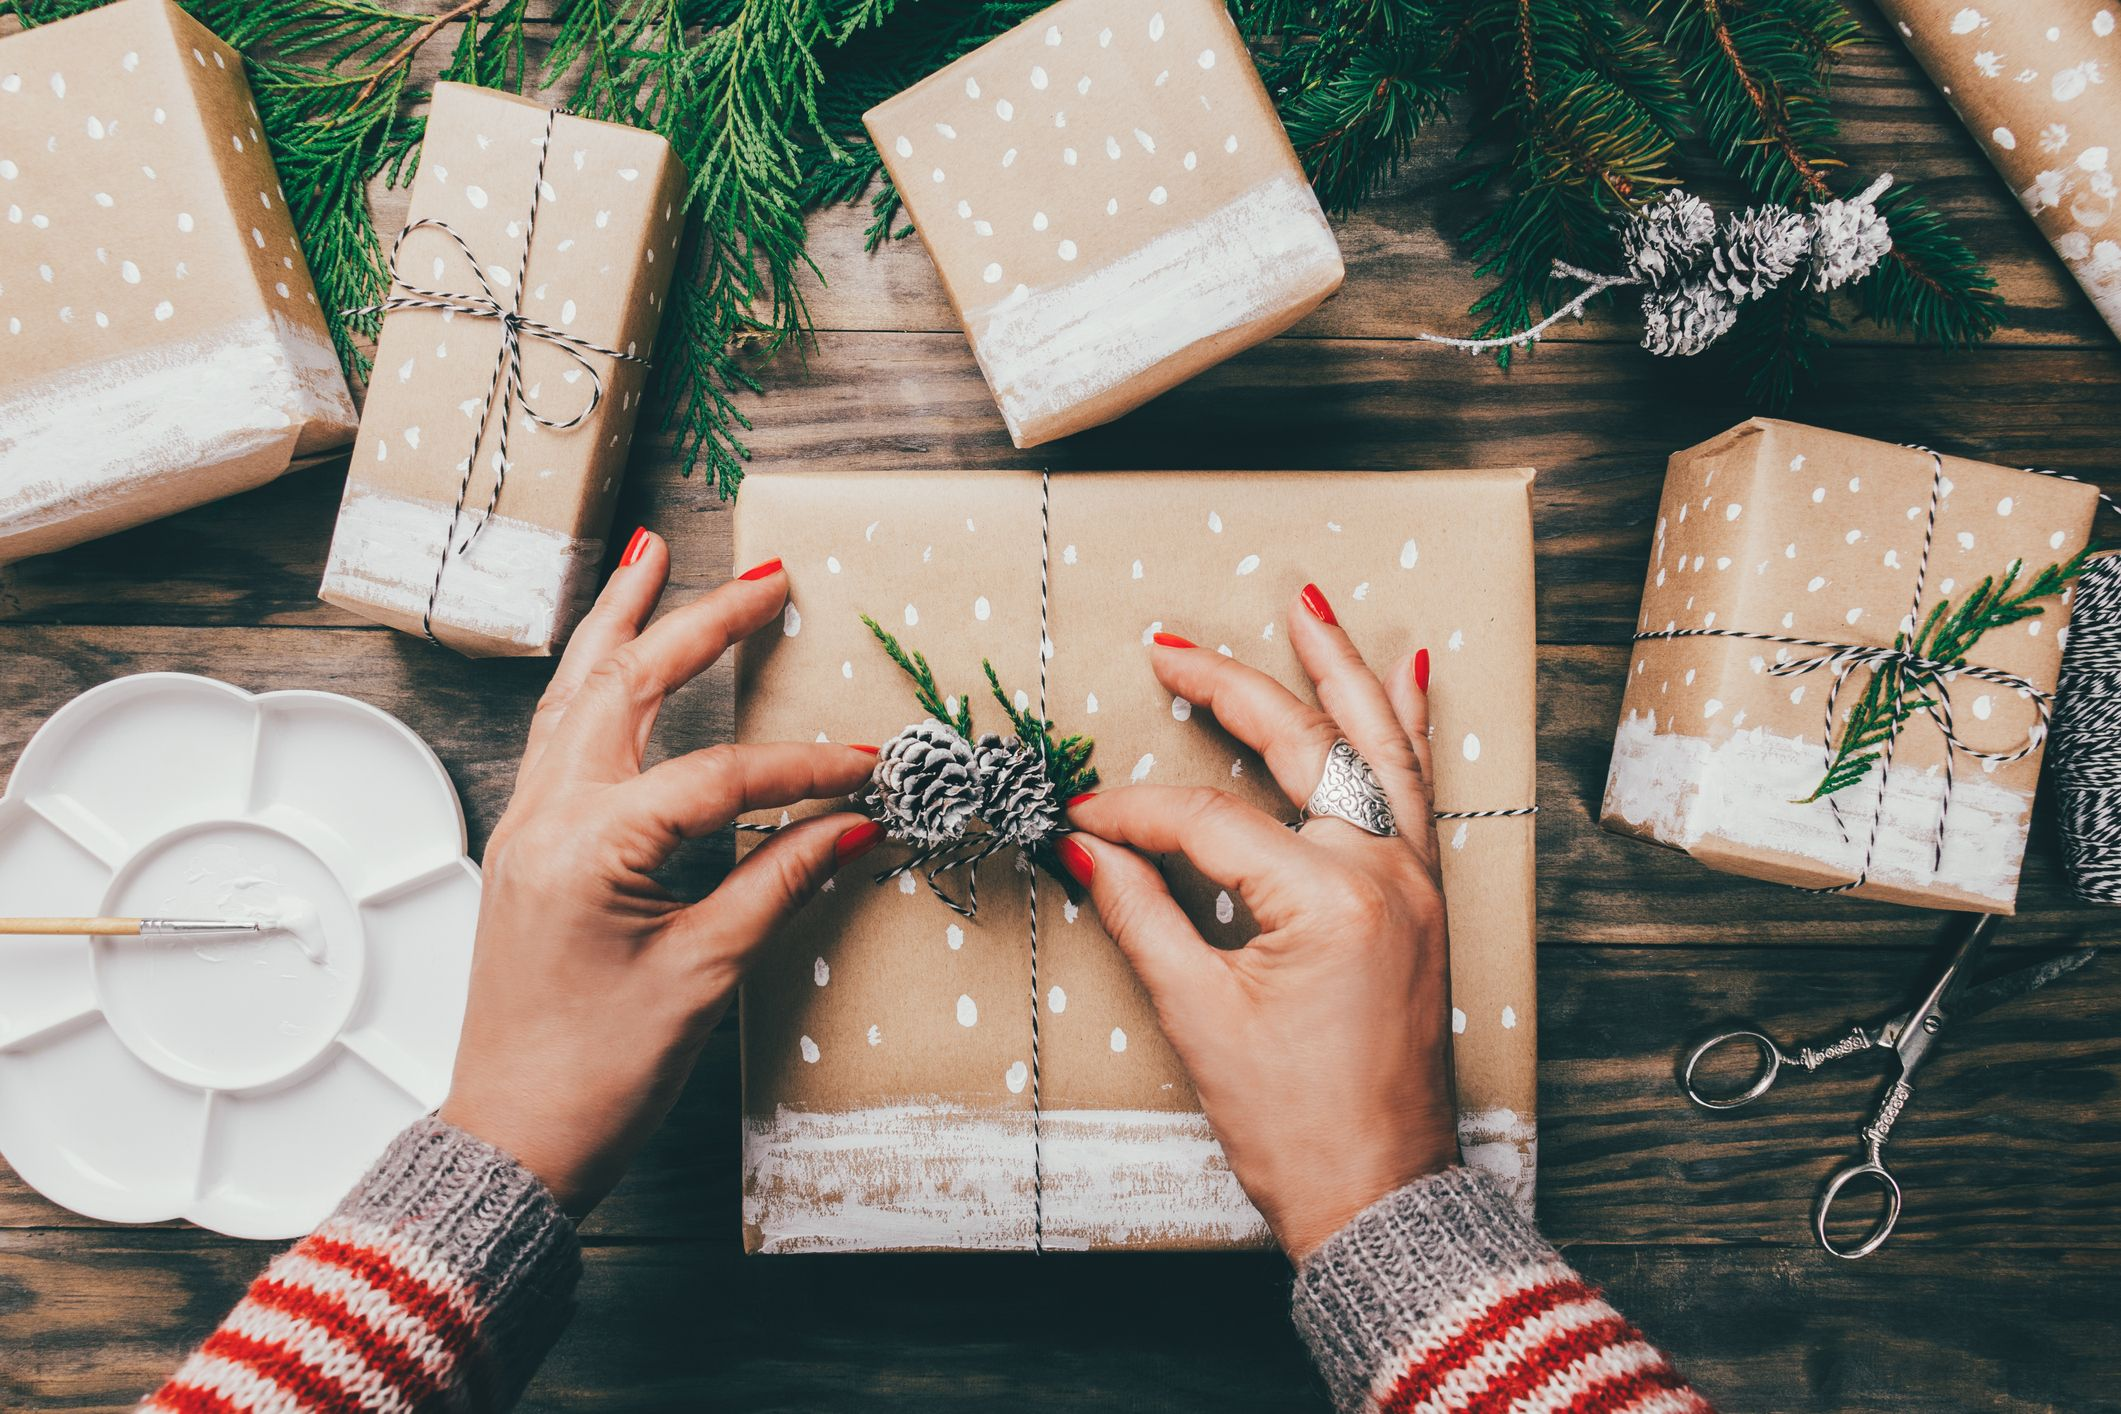 8 Easy Christmas Craft Ideas To Get You In The Festive Spirit